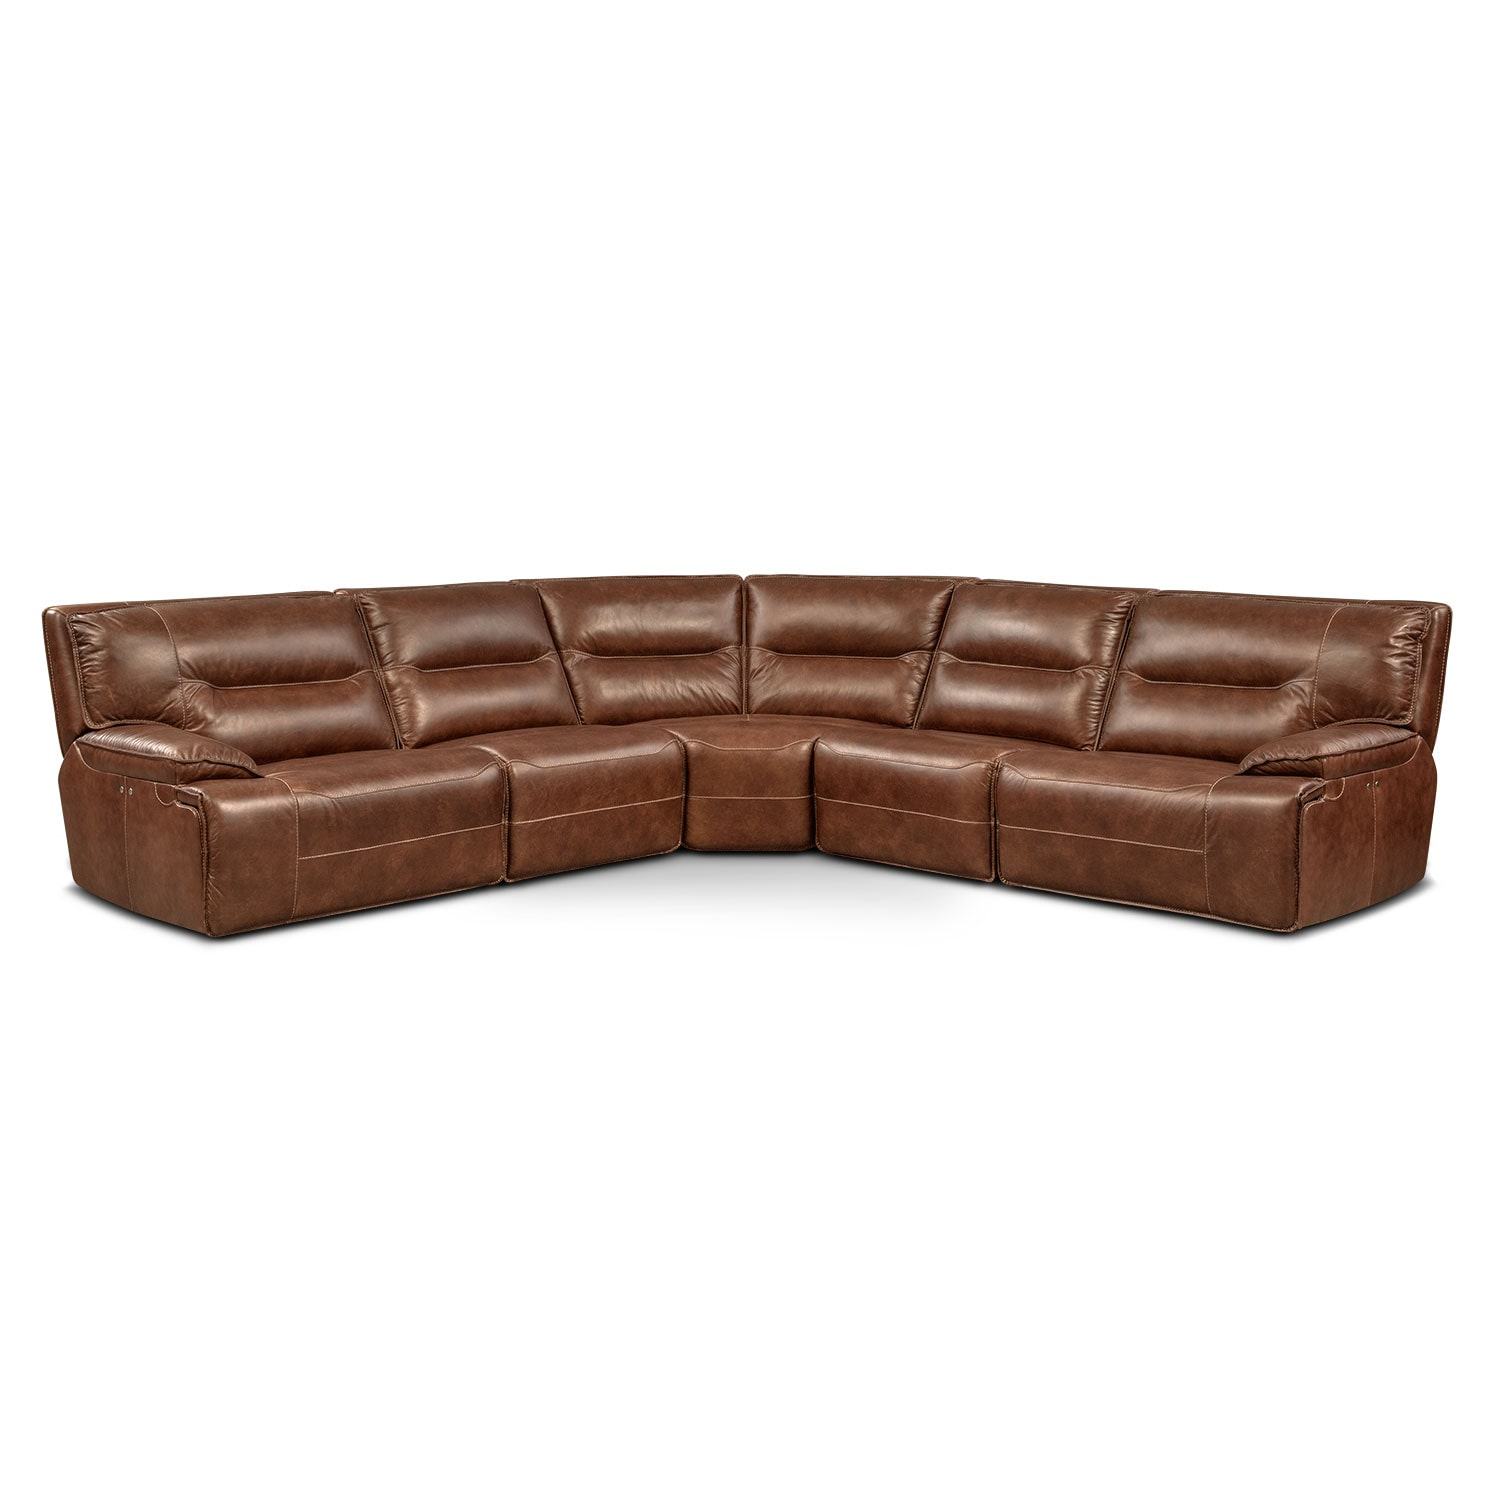 Living Room Furniture - Glenmont Brown 5 Pc. Power Reclining Sectional w/ 3 Power Recliners